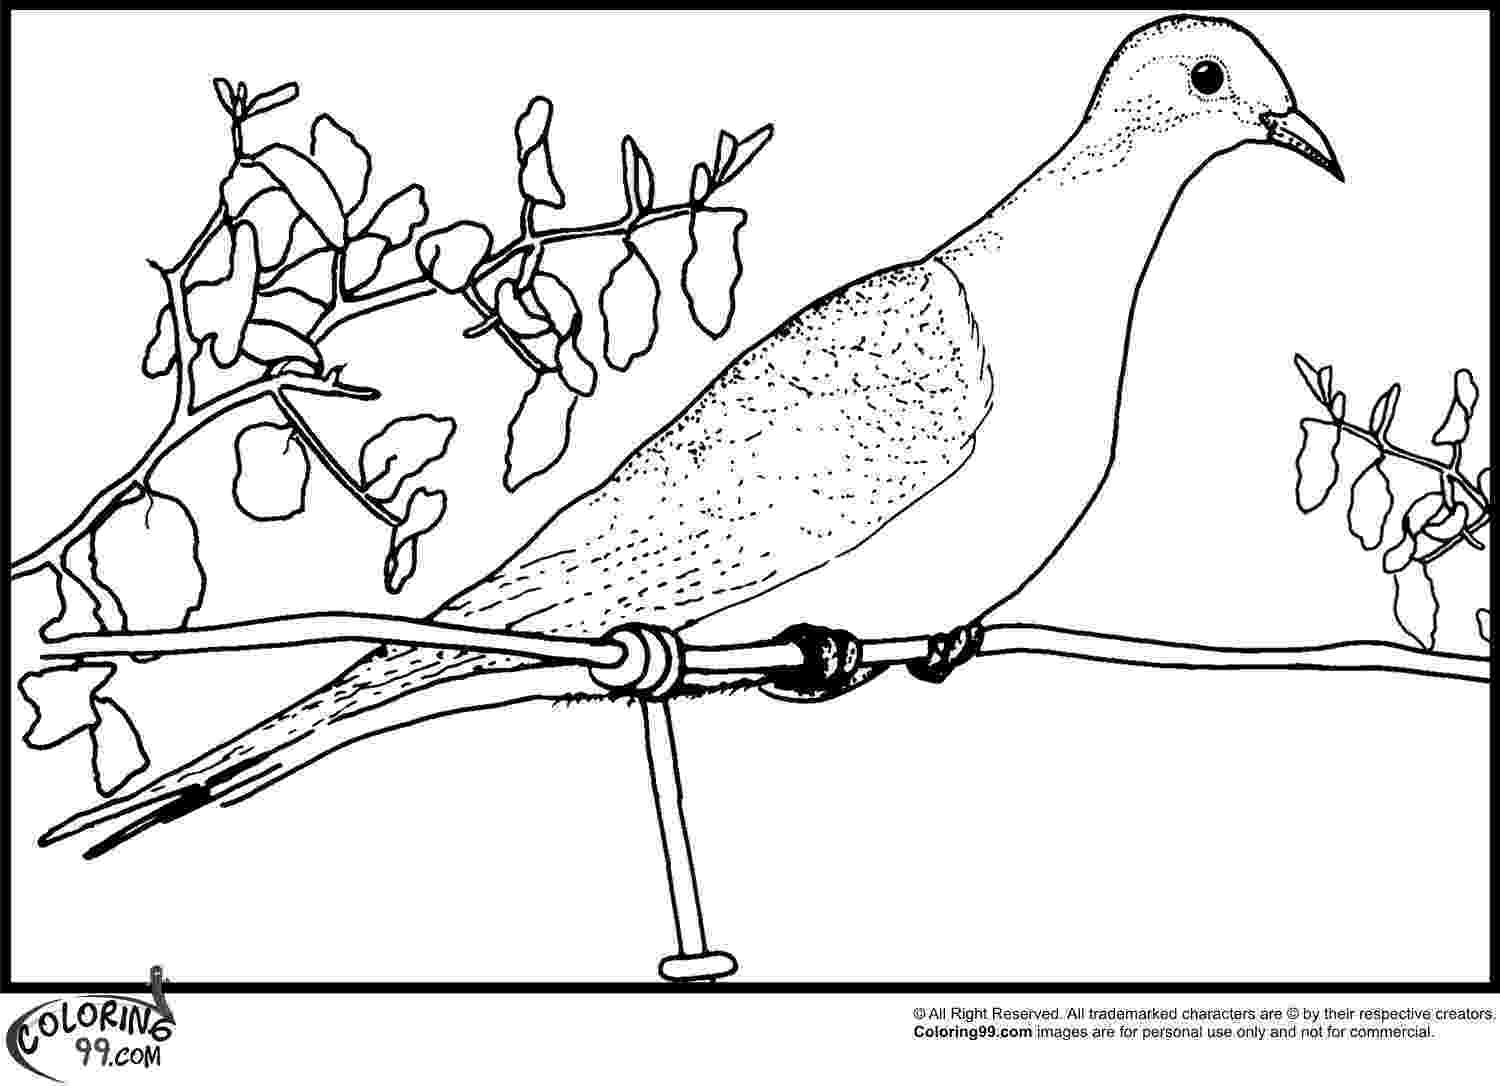 doves coloring pages dove of peace coloring pages to download and print for free coloring doves pages